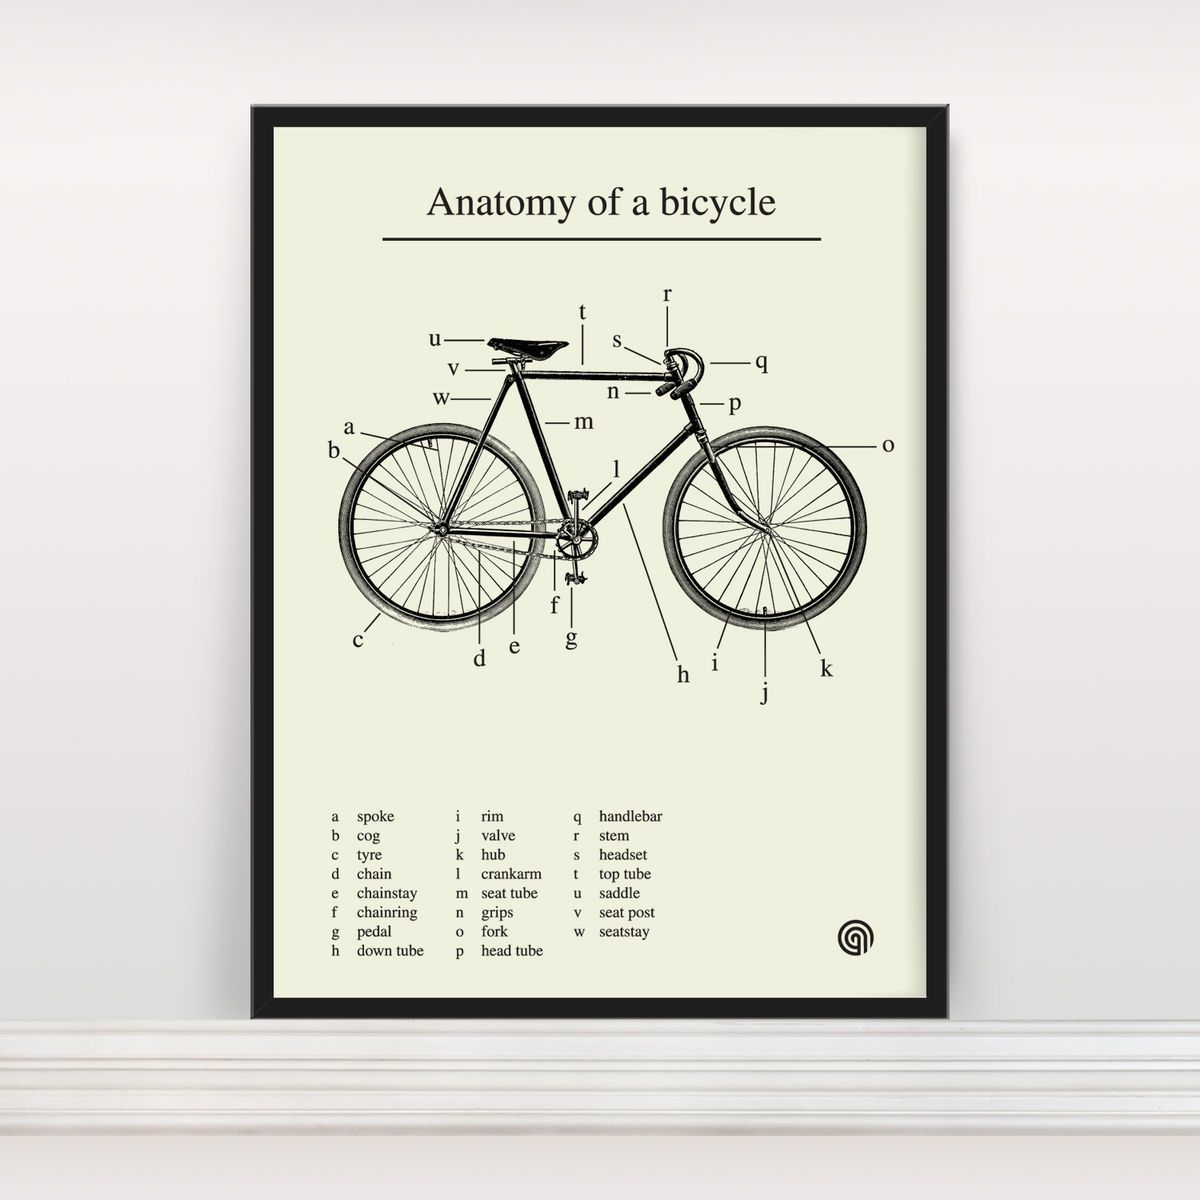 Anatomy of a bicycle - Bicycle Store Paris: Photo | Bikes ...